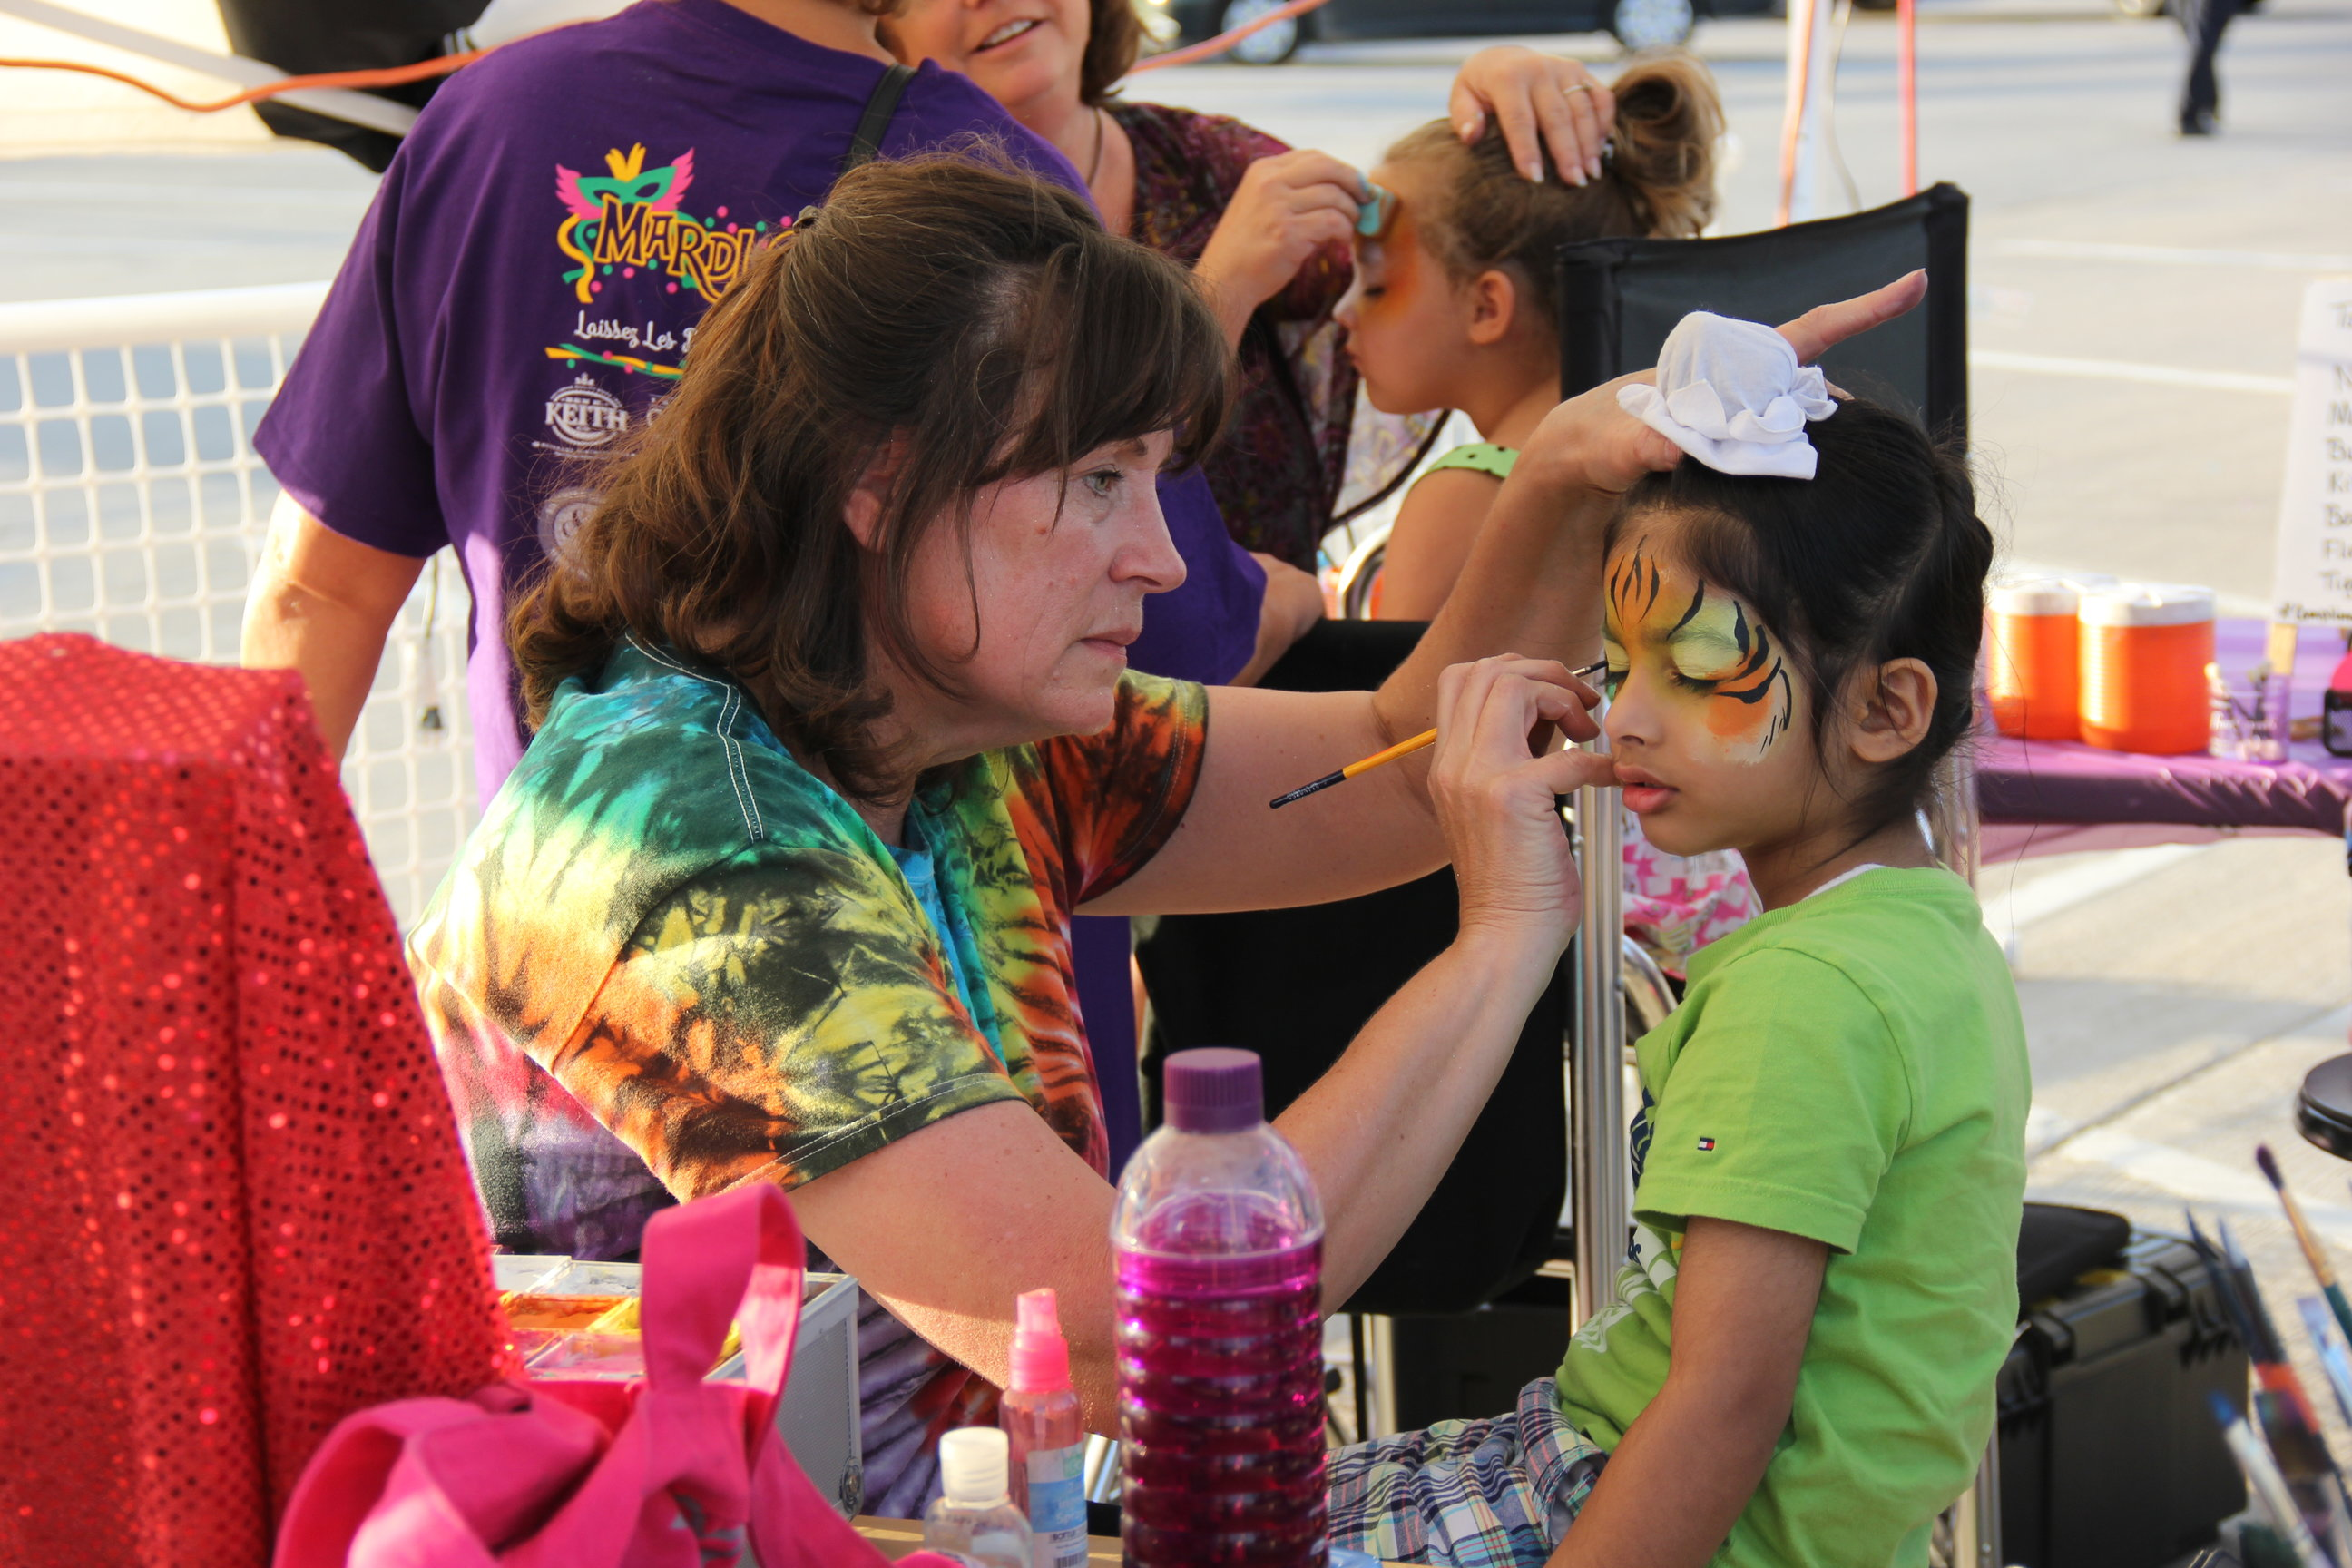 Young children's faces are painted to resemble colorful animals near the arts and crafts stations. This Saturday, Coppell partnered with Dodie's to hold its first annual Mardi Gras in the Fall event at the Square in Old Town Coppell.